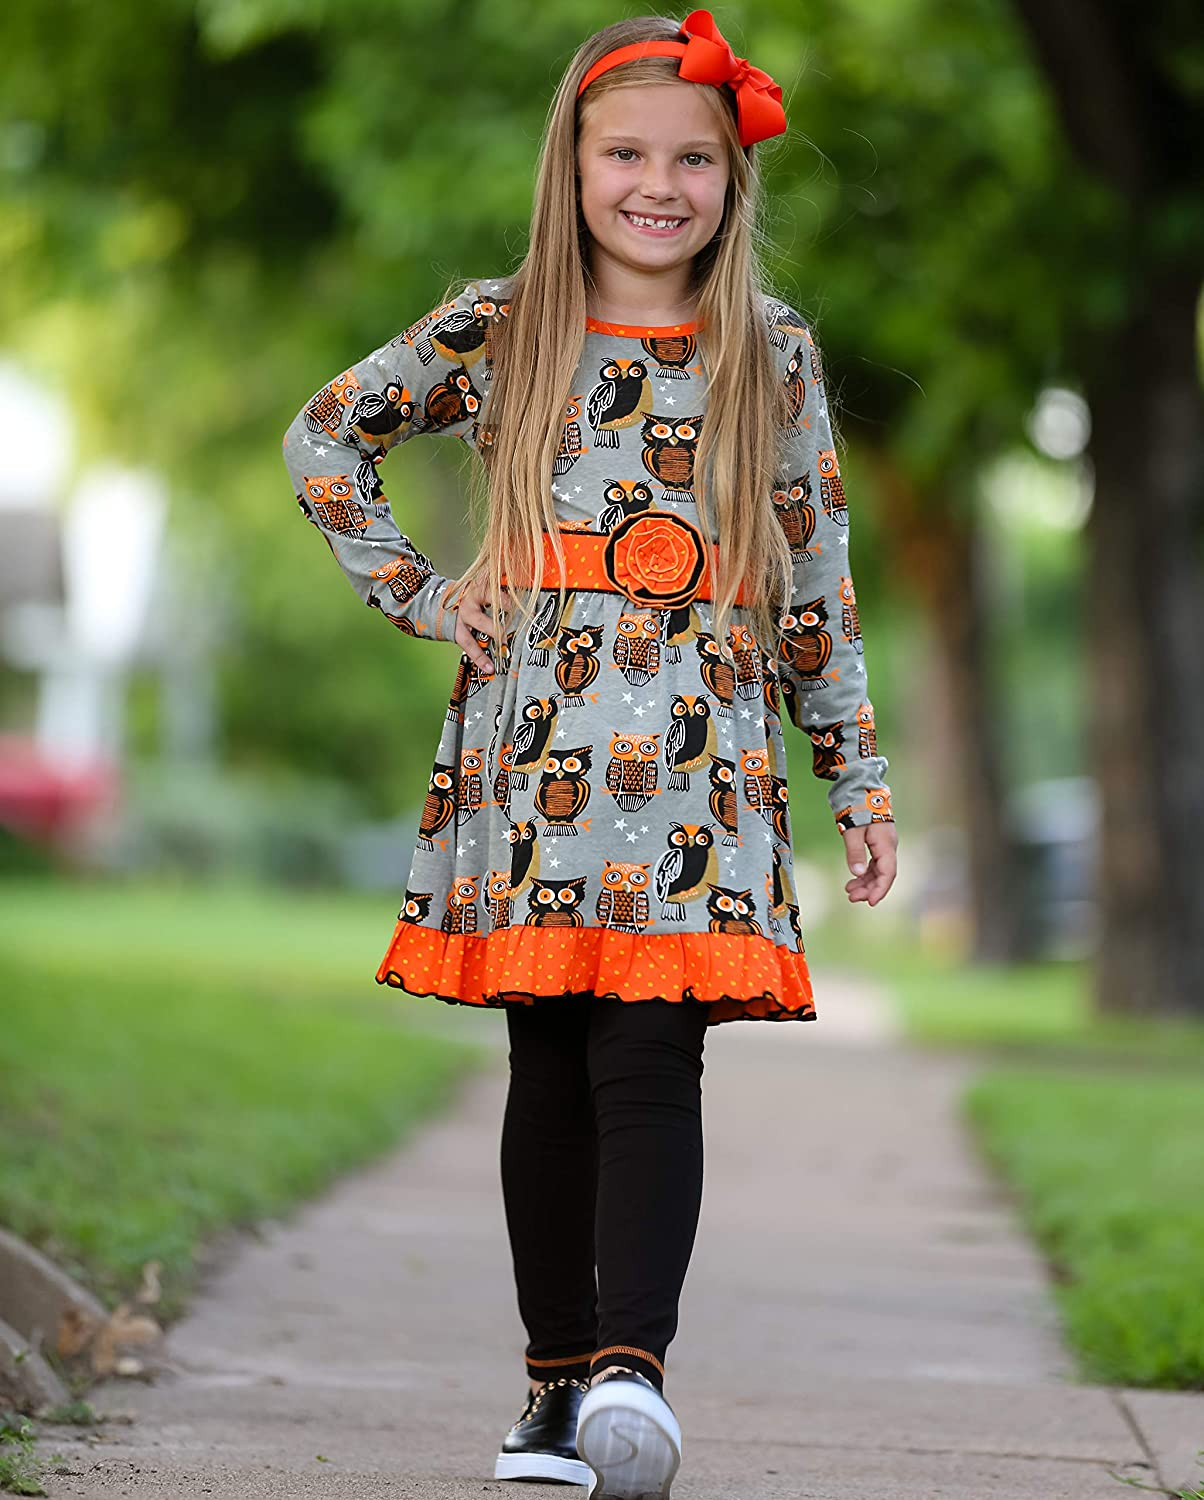 AnnLoren Big Girls Boutique Holiday Dress and Leggings Sizes from 12 Months to 11 Years